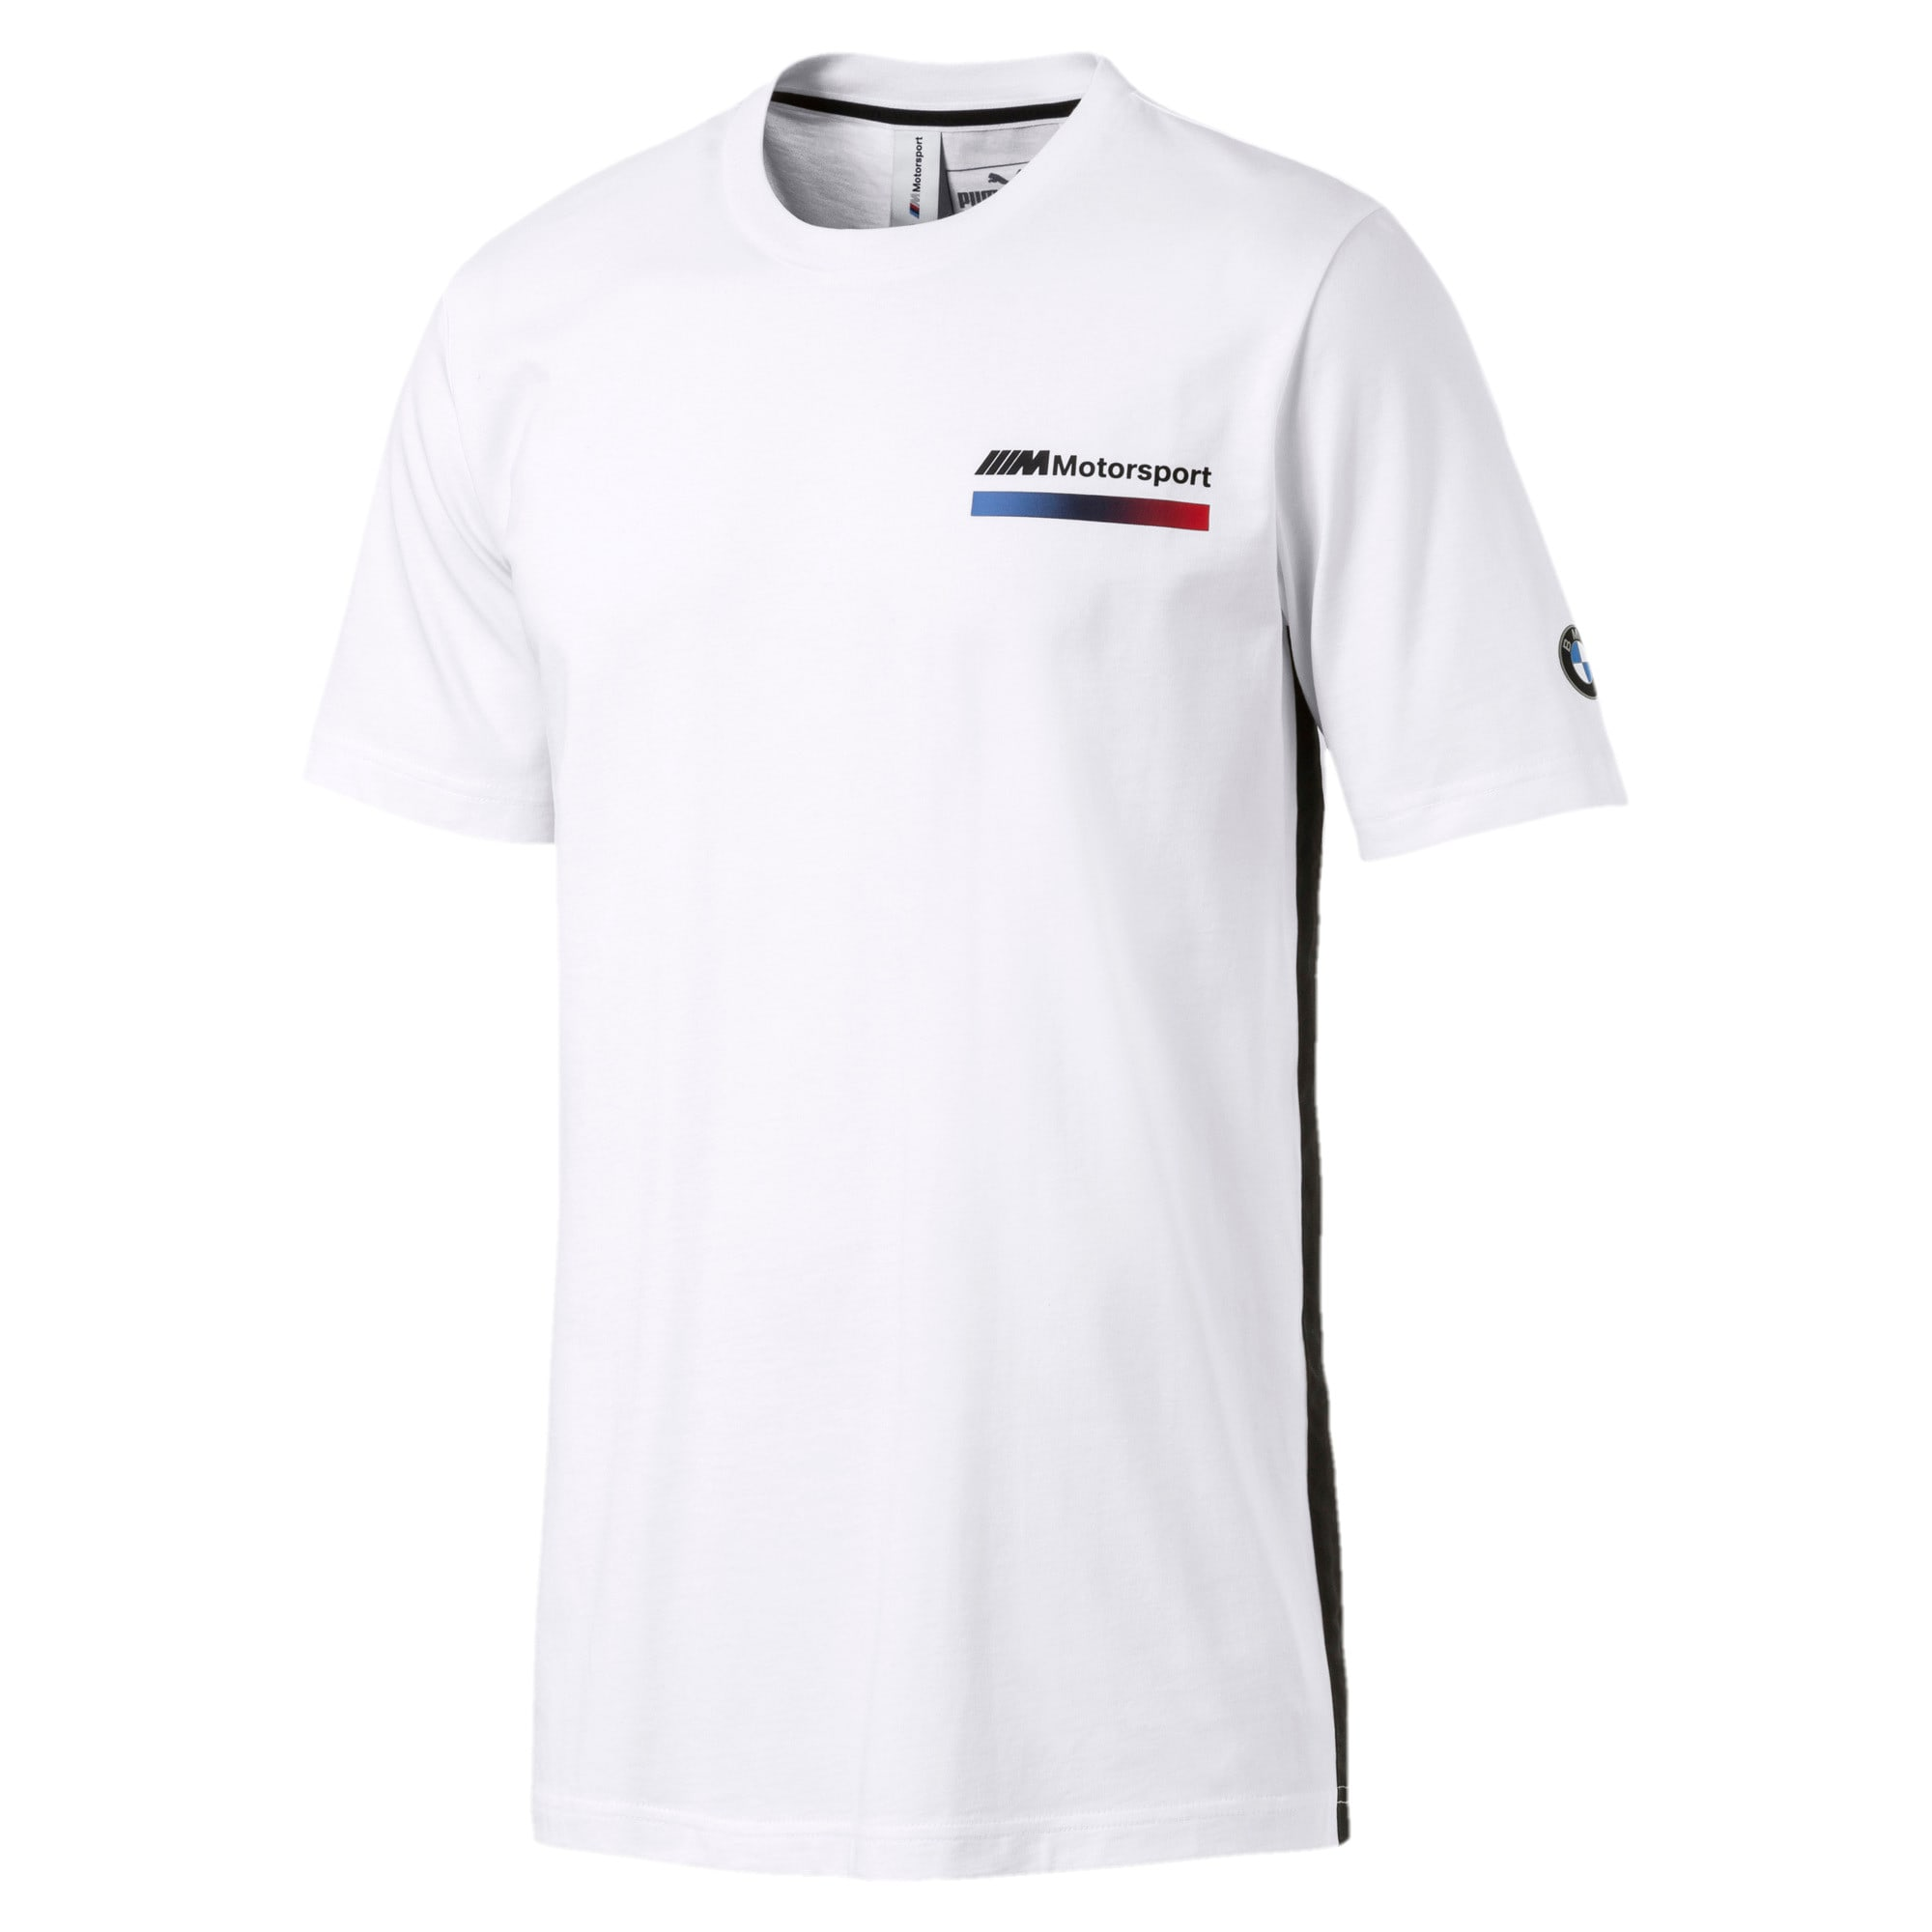 Thumbnail 4 of BMW M Motorsport Lifestyle Men's Graphic Tee, Puma White, medium